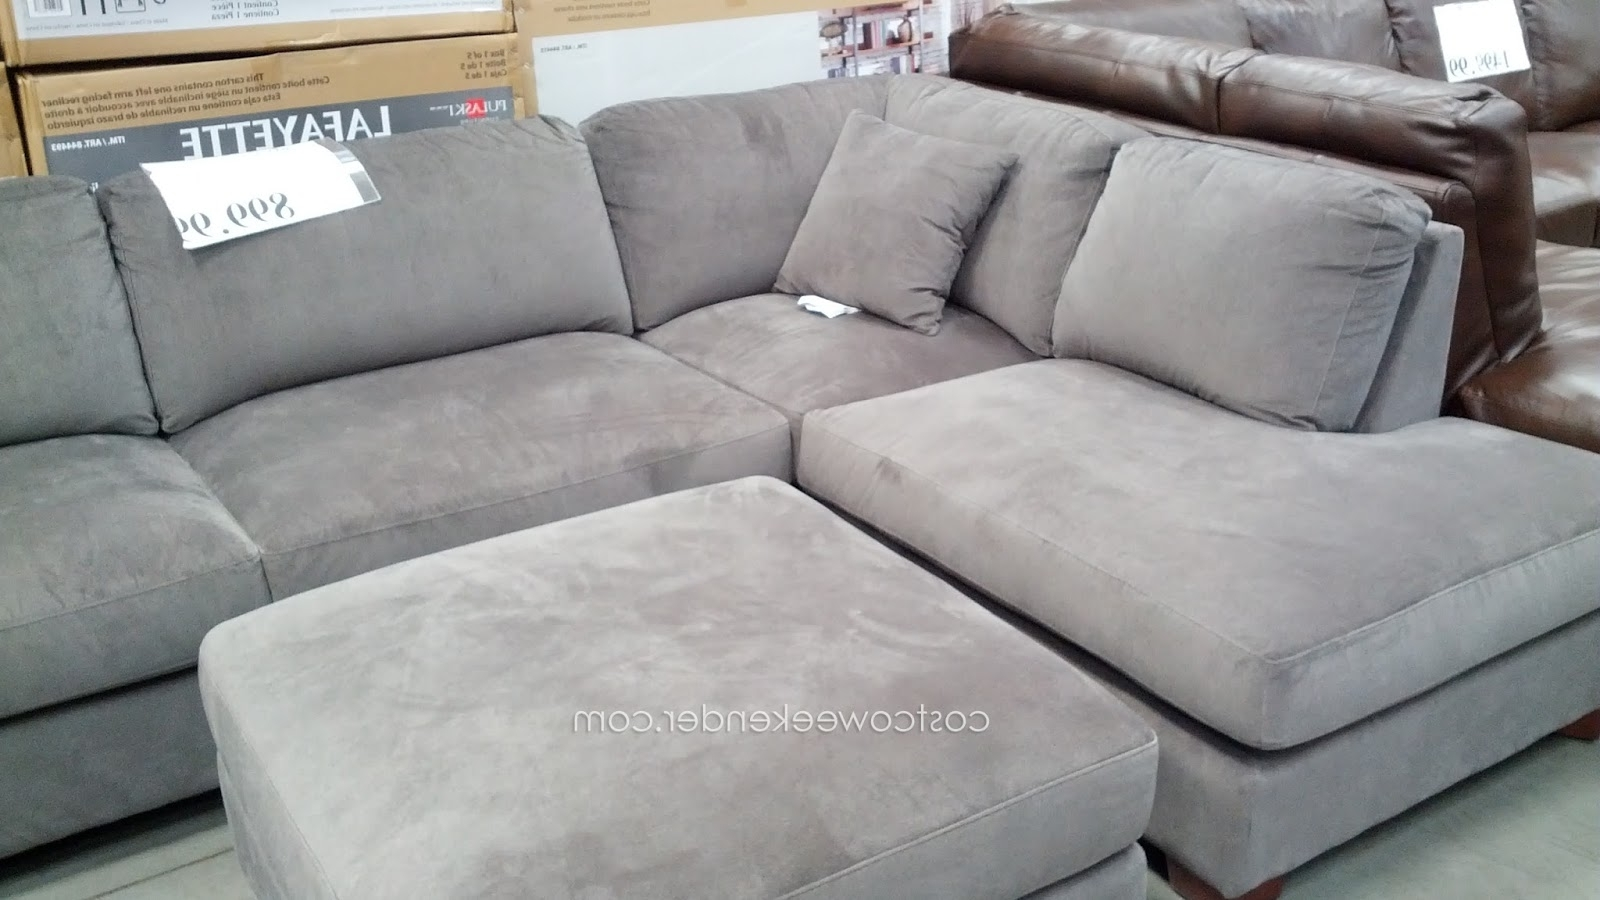 Well Known Sectional Sofas At Costco With Regard To Sectional Sofa Design: Lovely Sectional Sofas Costco Leather (View 15 of 15)